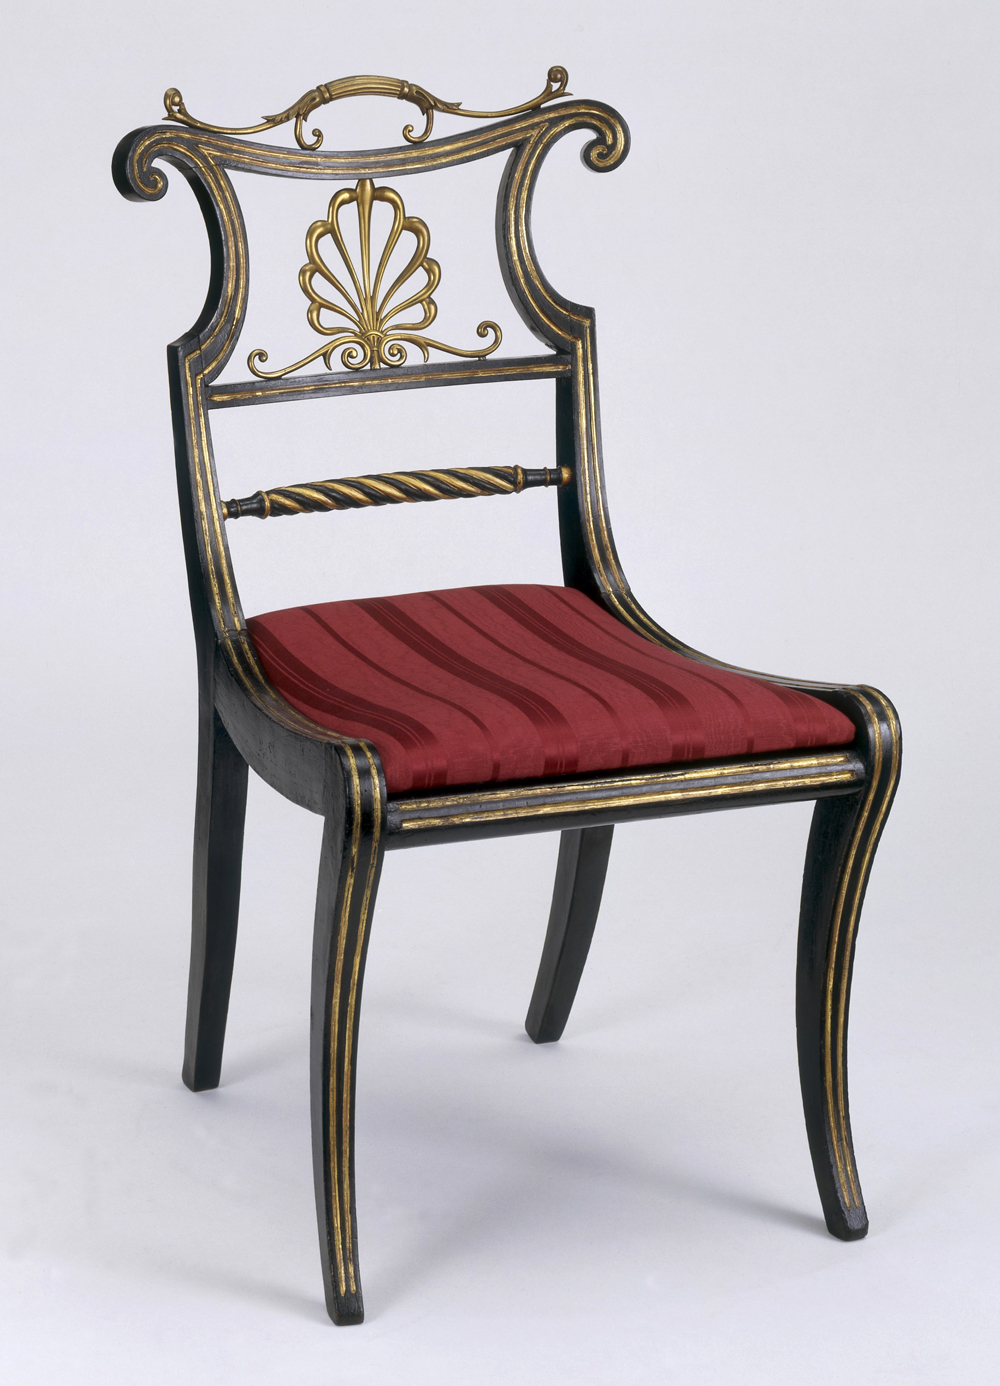 Georgian furniture characteristics - Trafalgar Chair